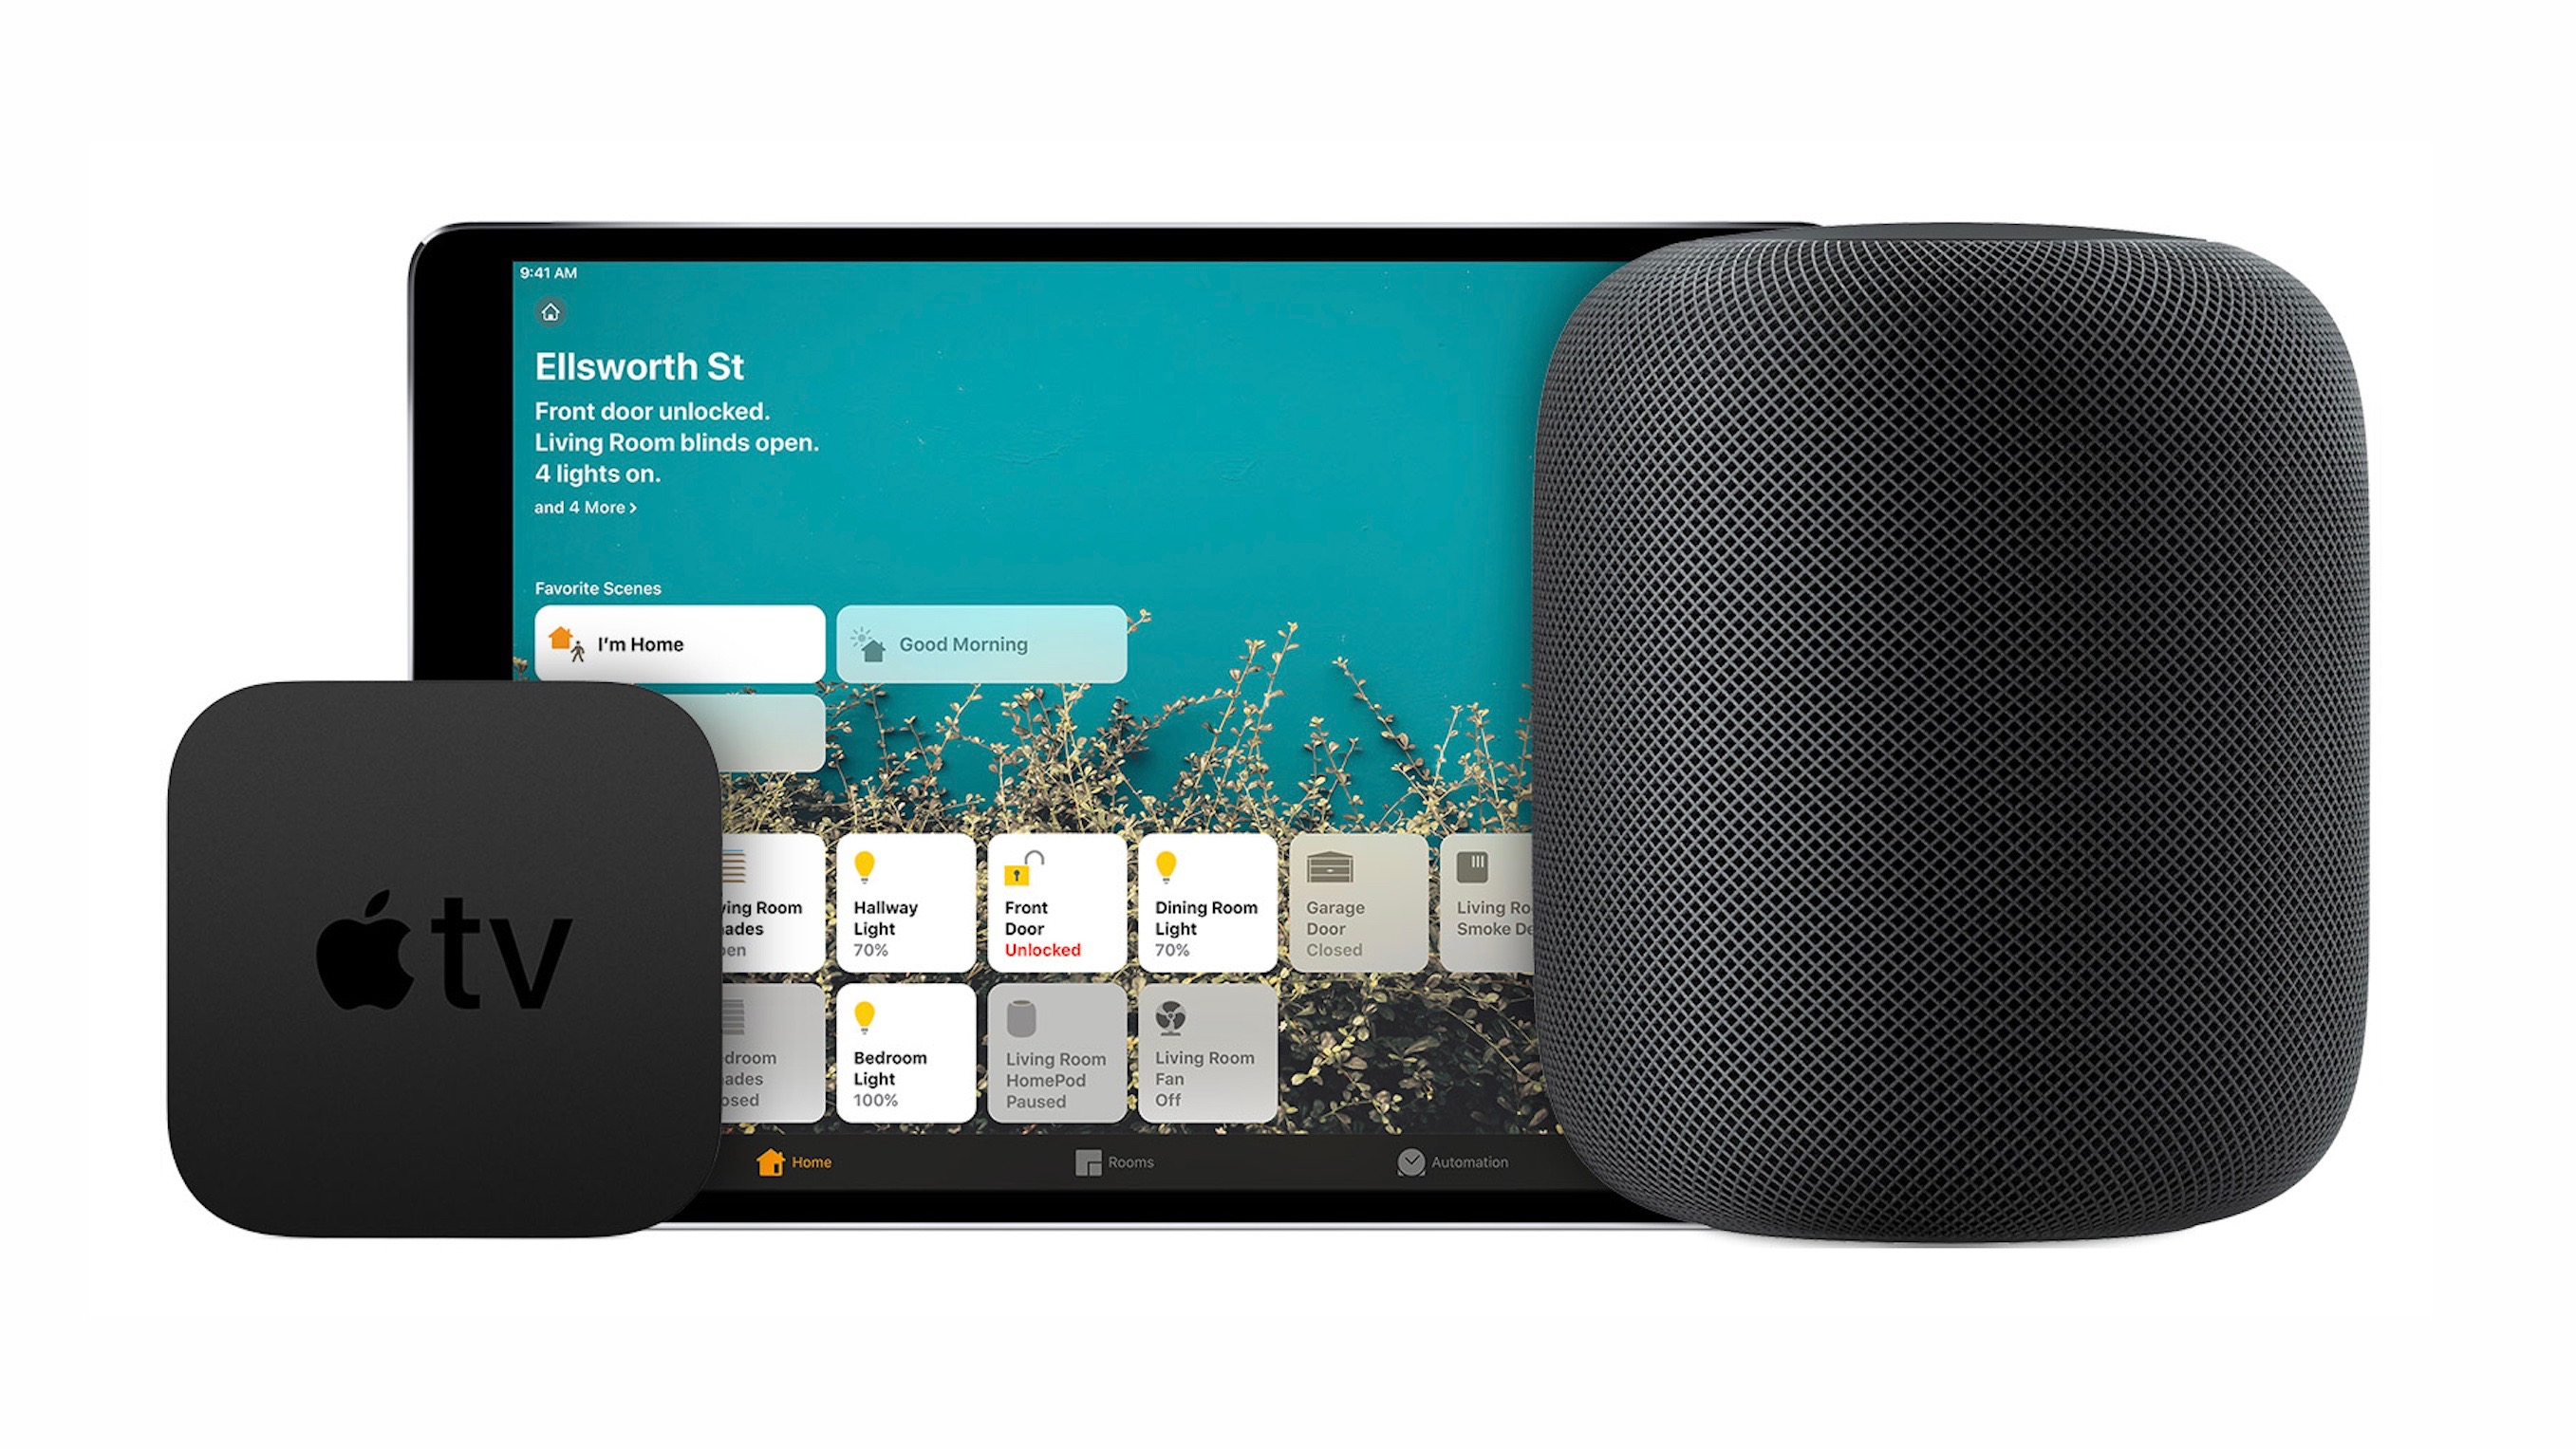 How to set up Apple TV, iPad, and HomePod as HomeKit hubs